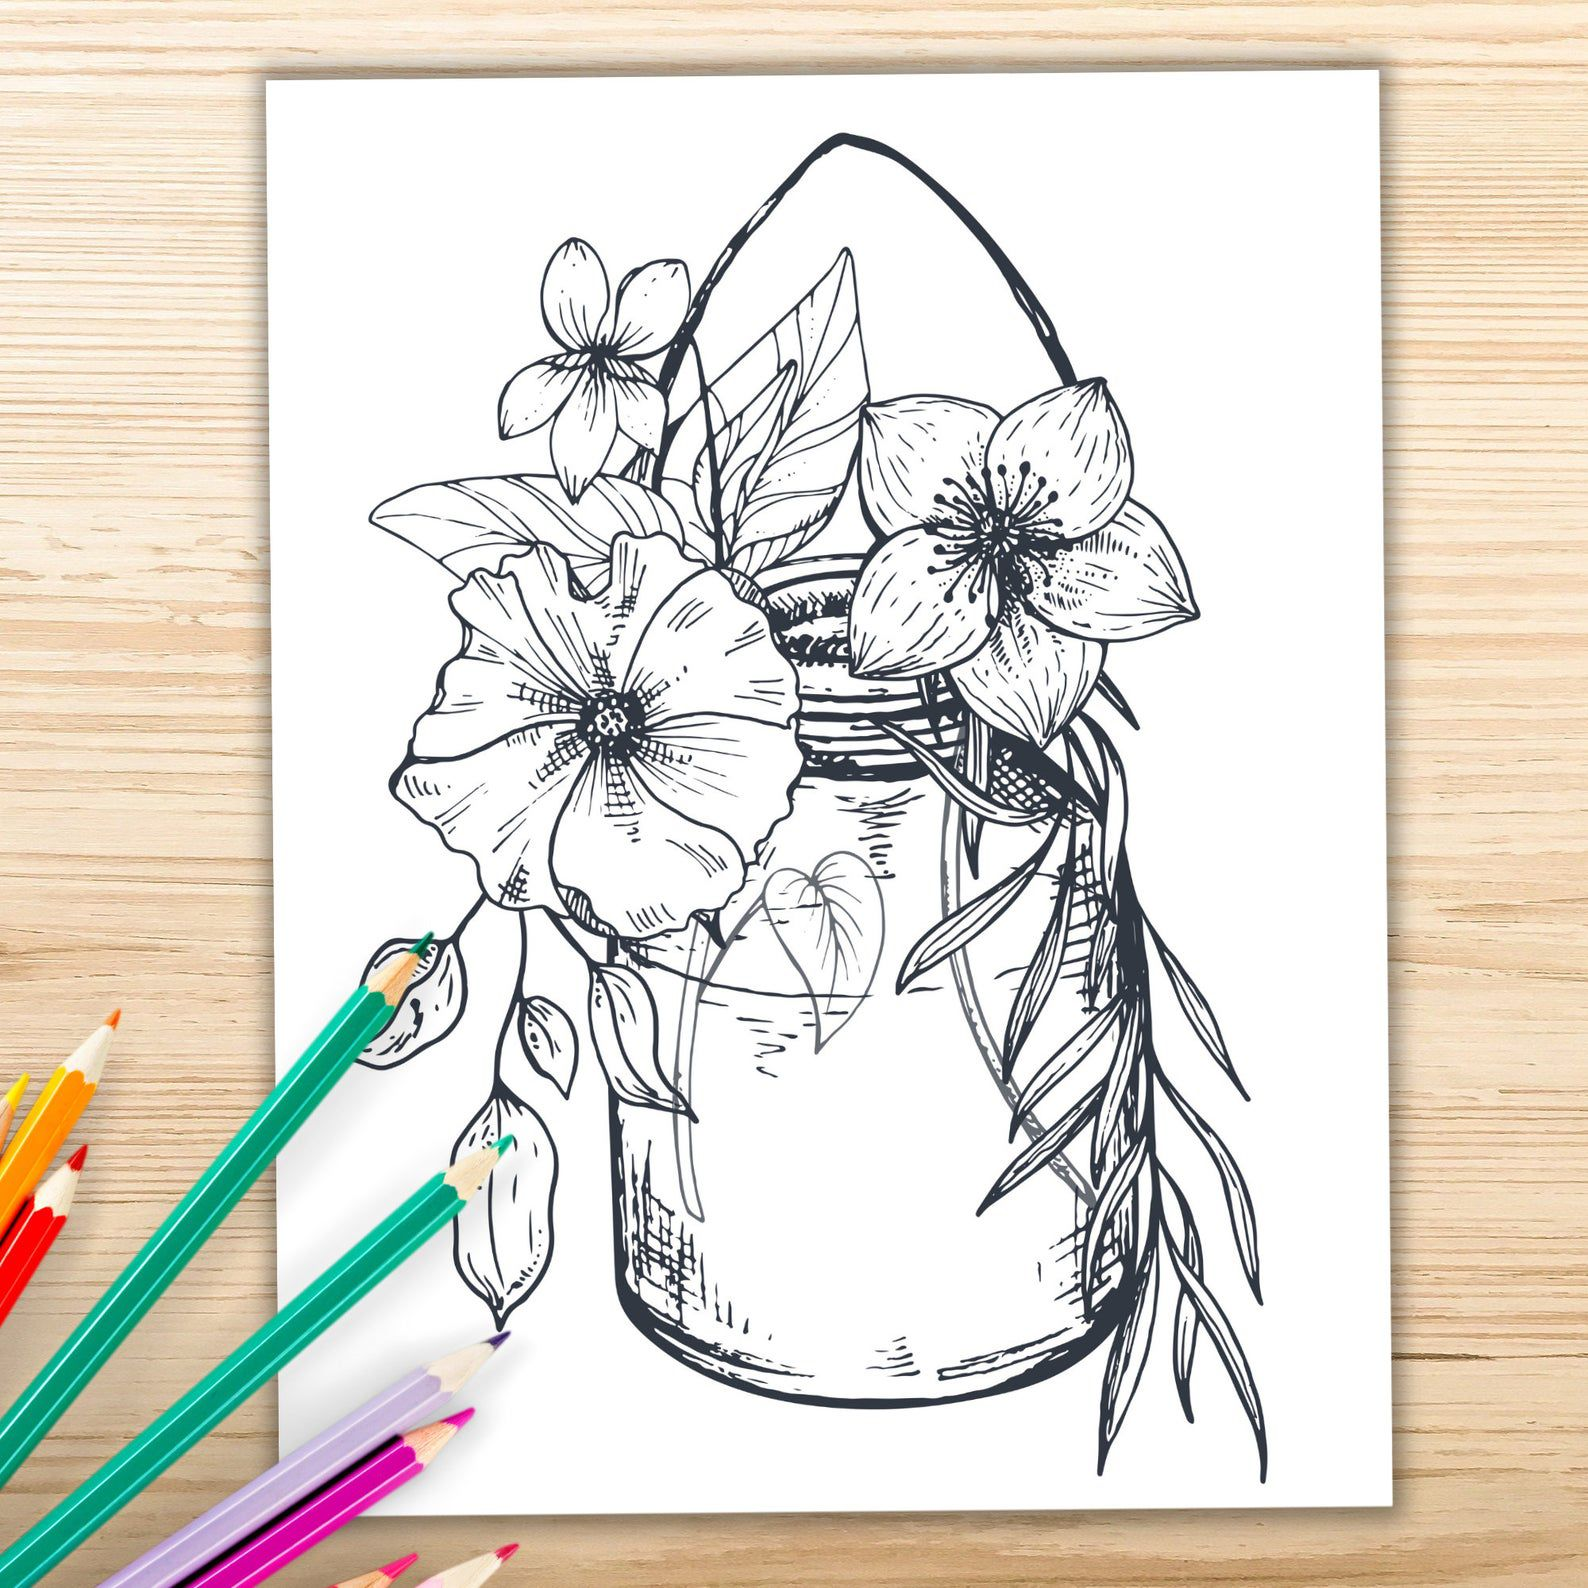 coloring book design of a jar of flowers